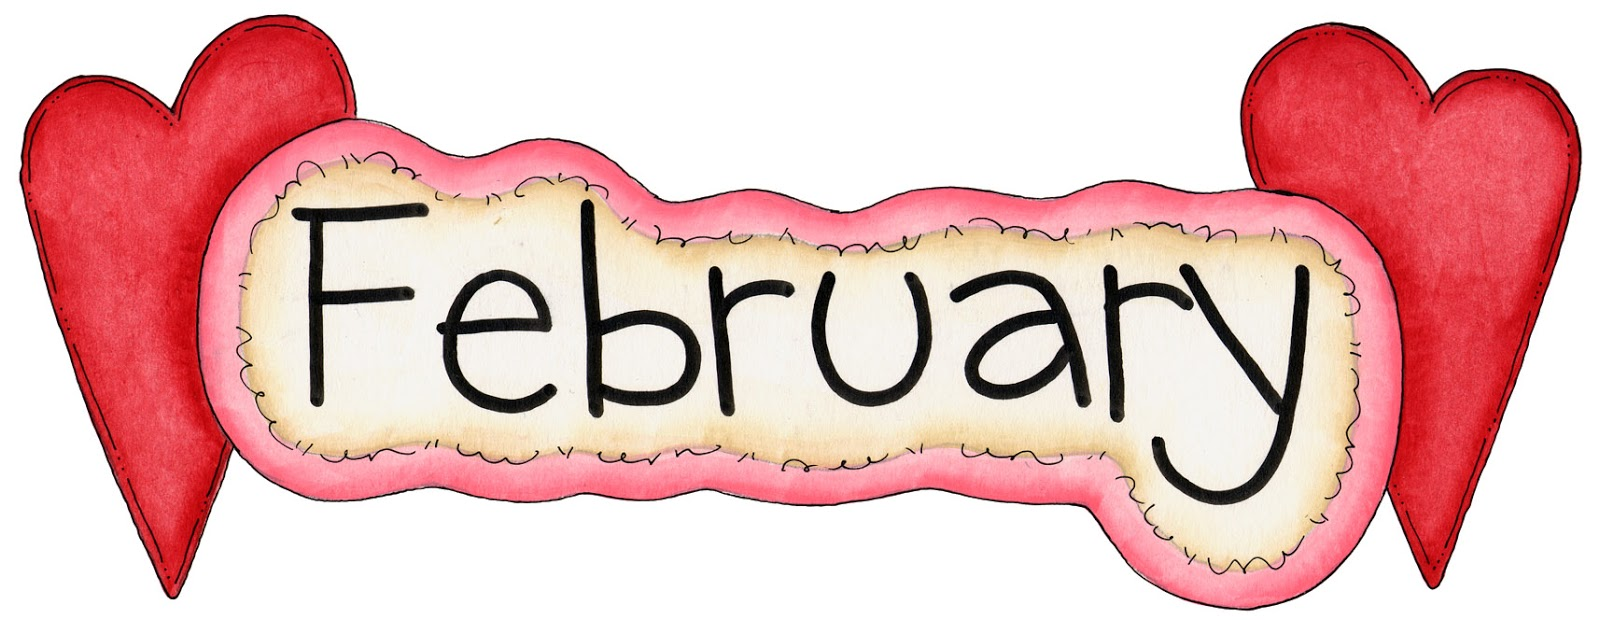 Library of february calendar clip art png files.